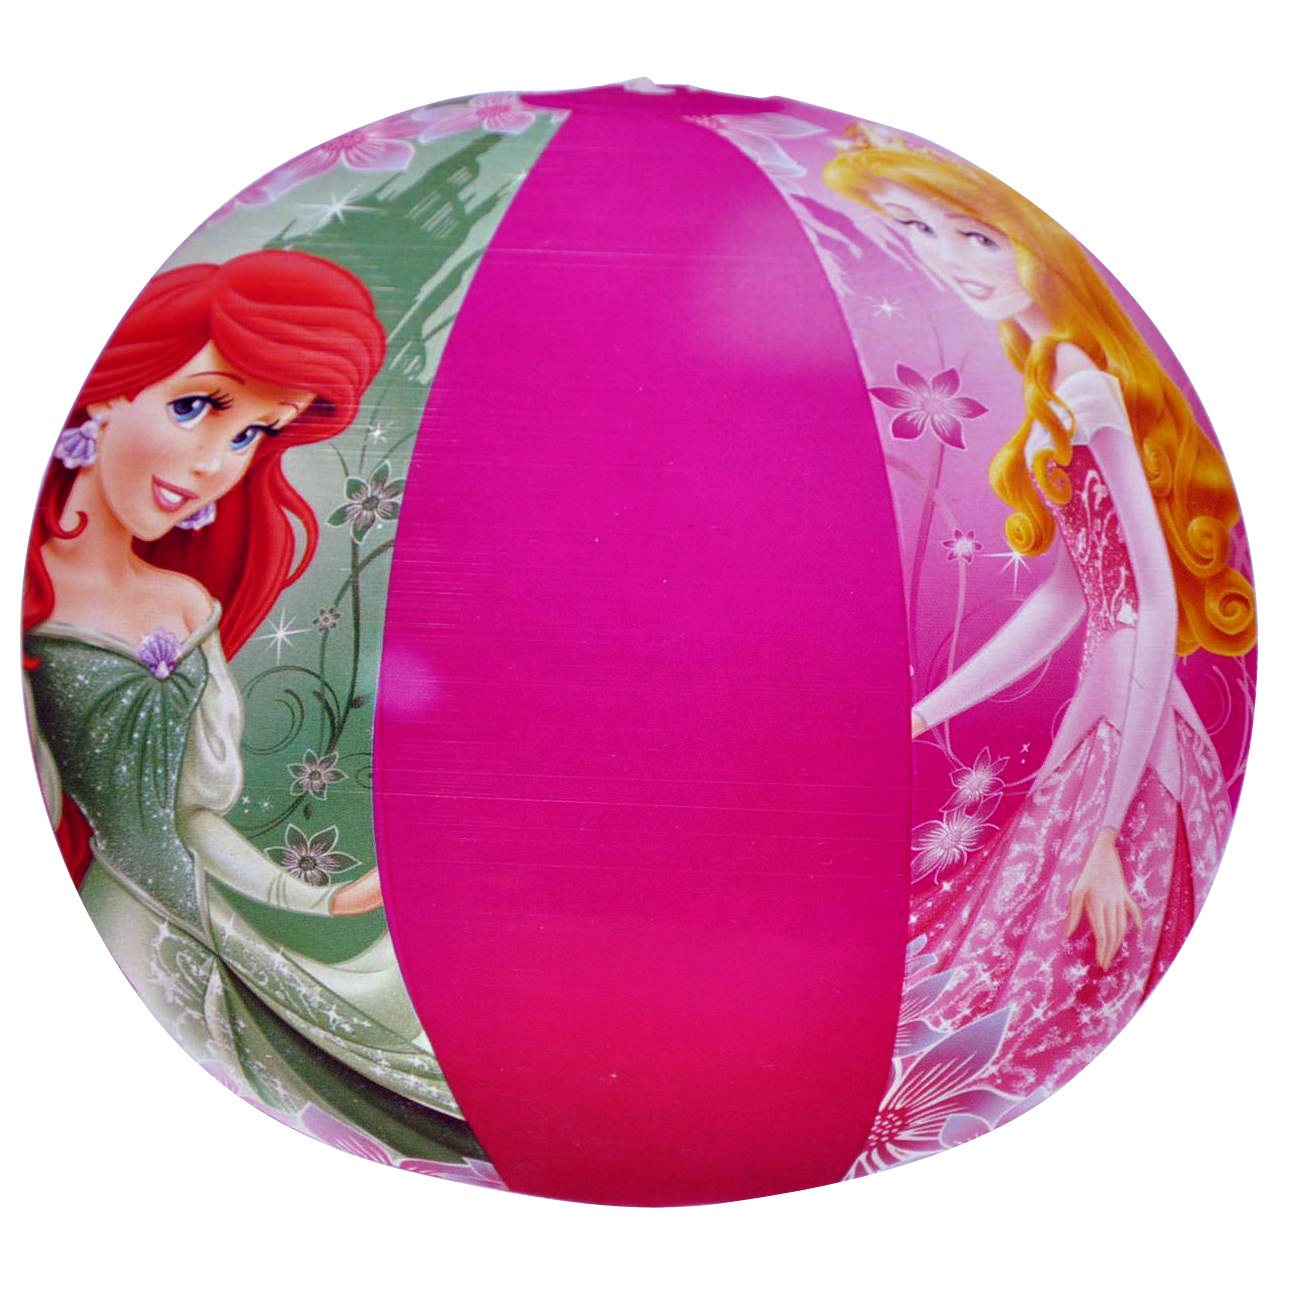 Disney Kids Inflatable Beach Ball Summer Fun Activity Toy (5 Characters)